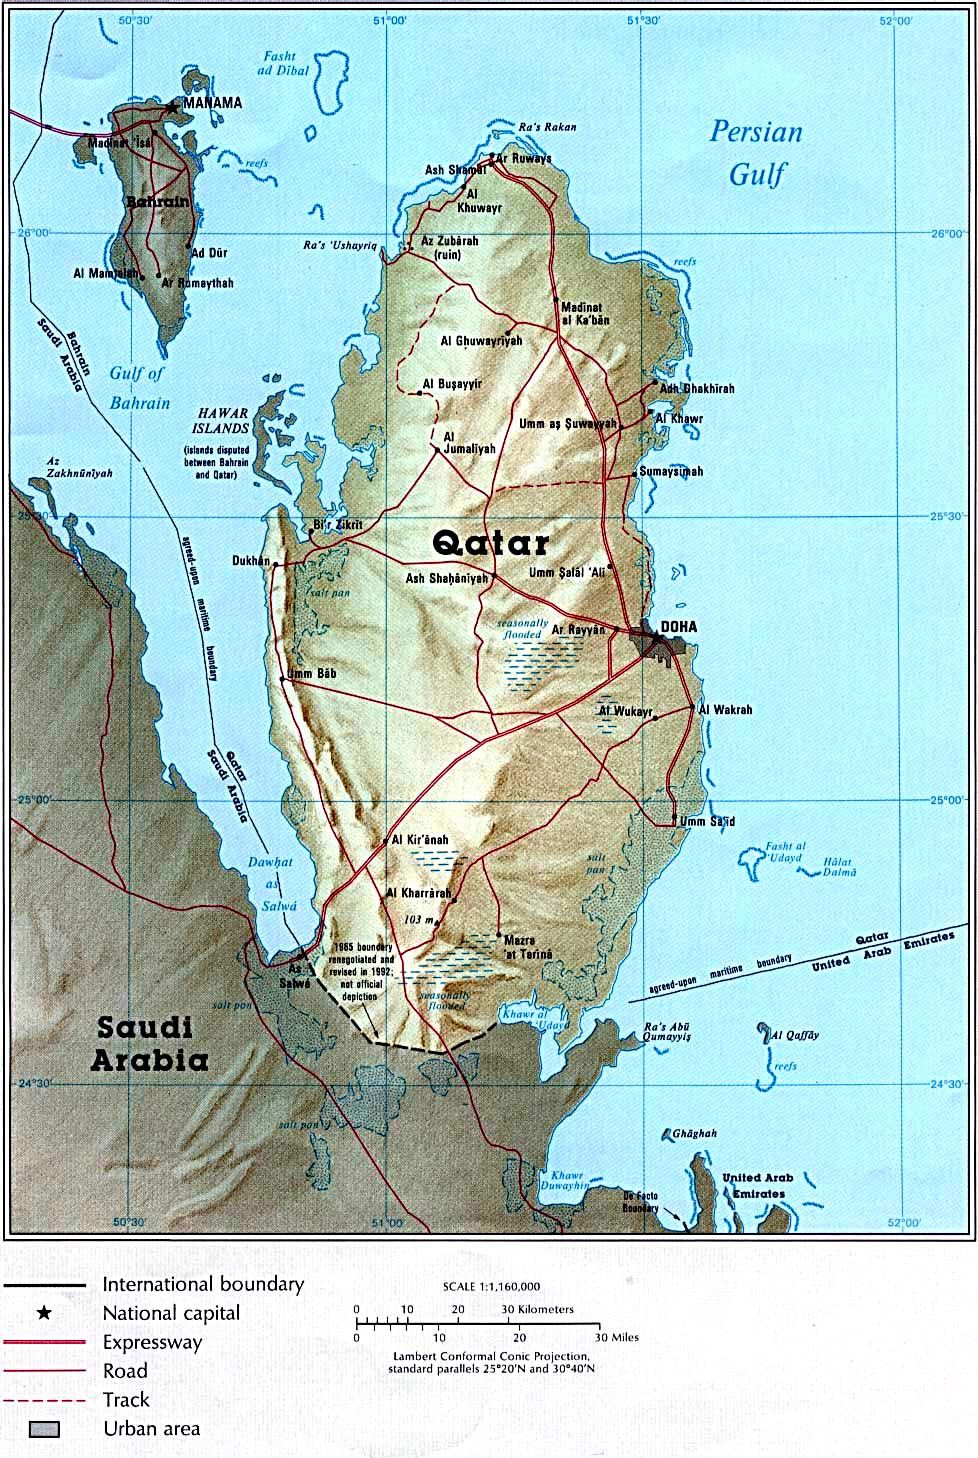 Qatar Country Map | maps | Qatar doha, Doha, Qatar flag on